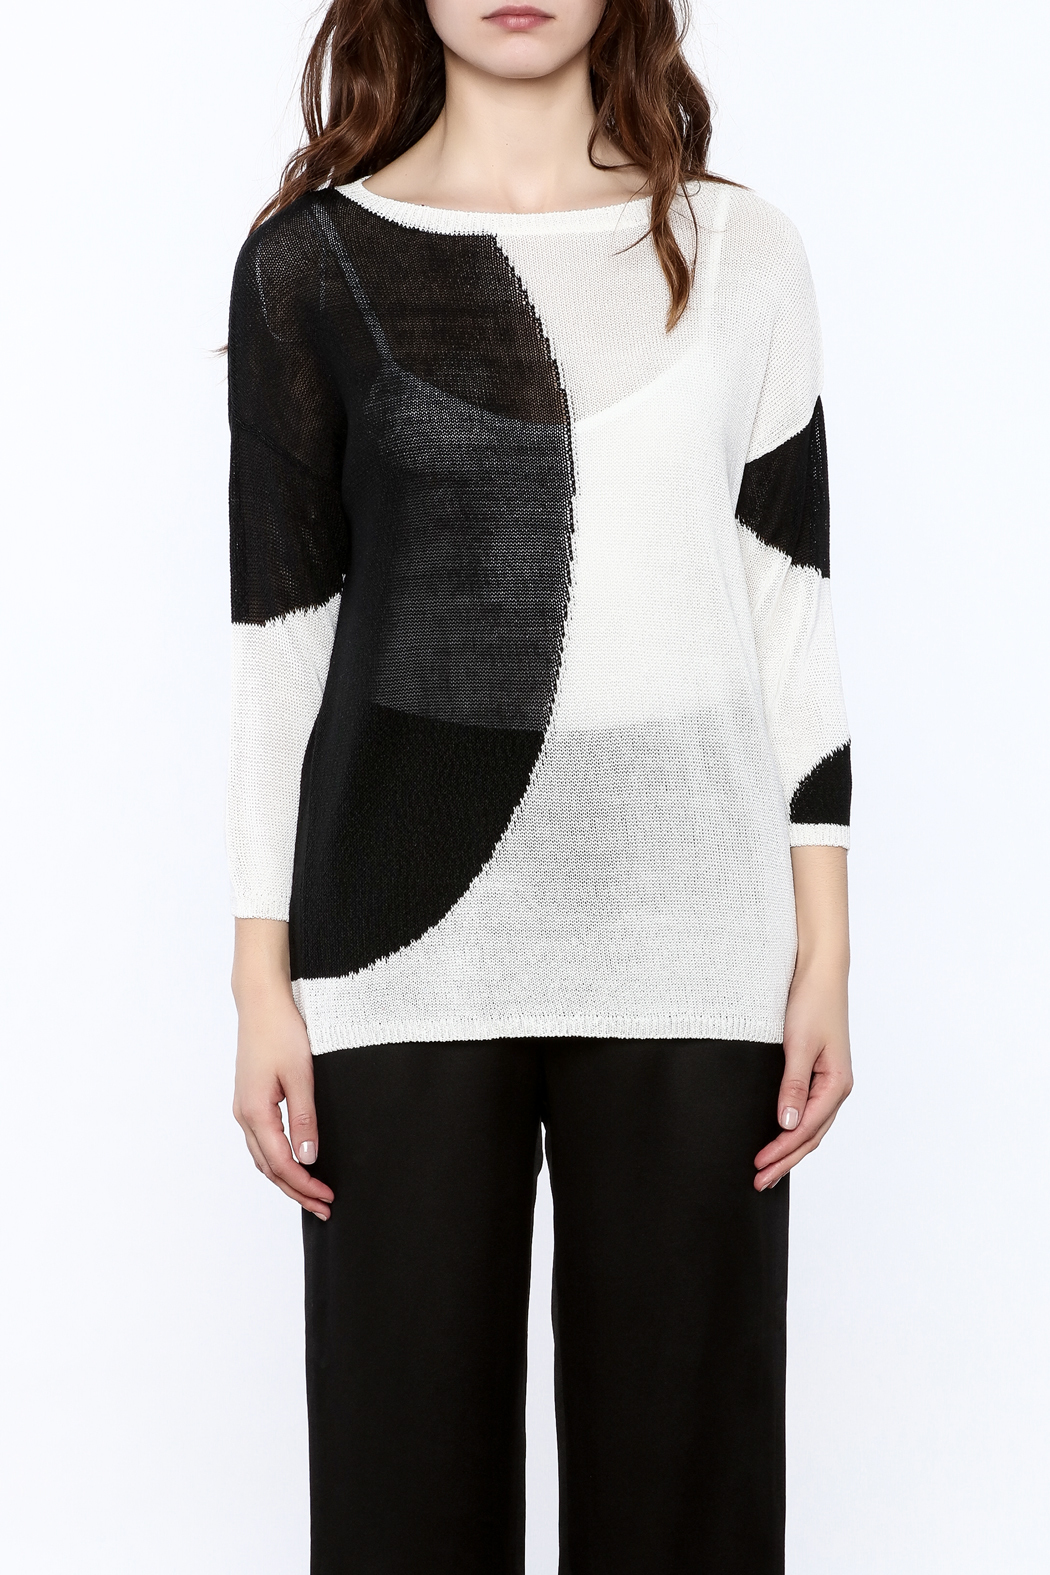 Katherine Barclay White And Black Sweater - Side Cropped Image